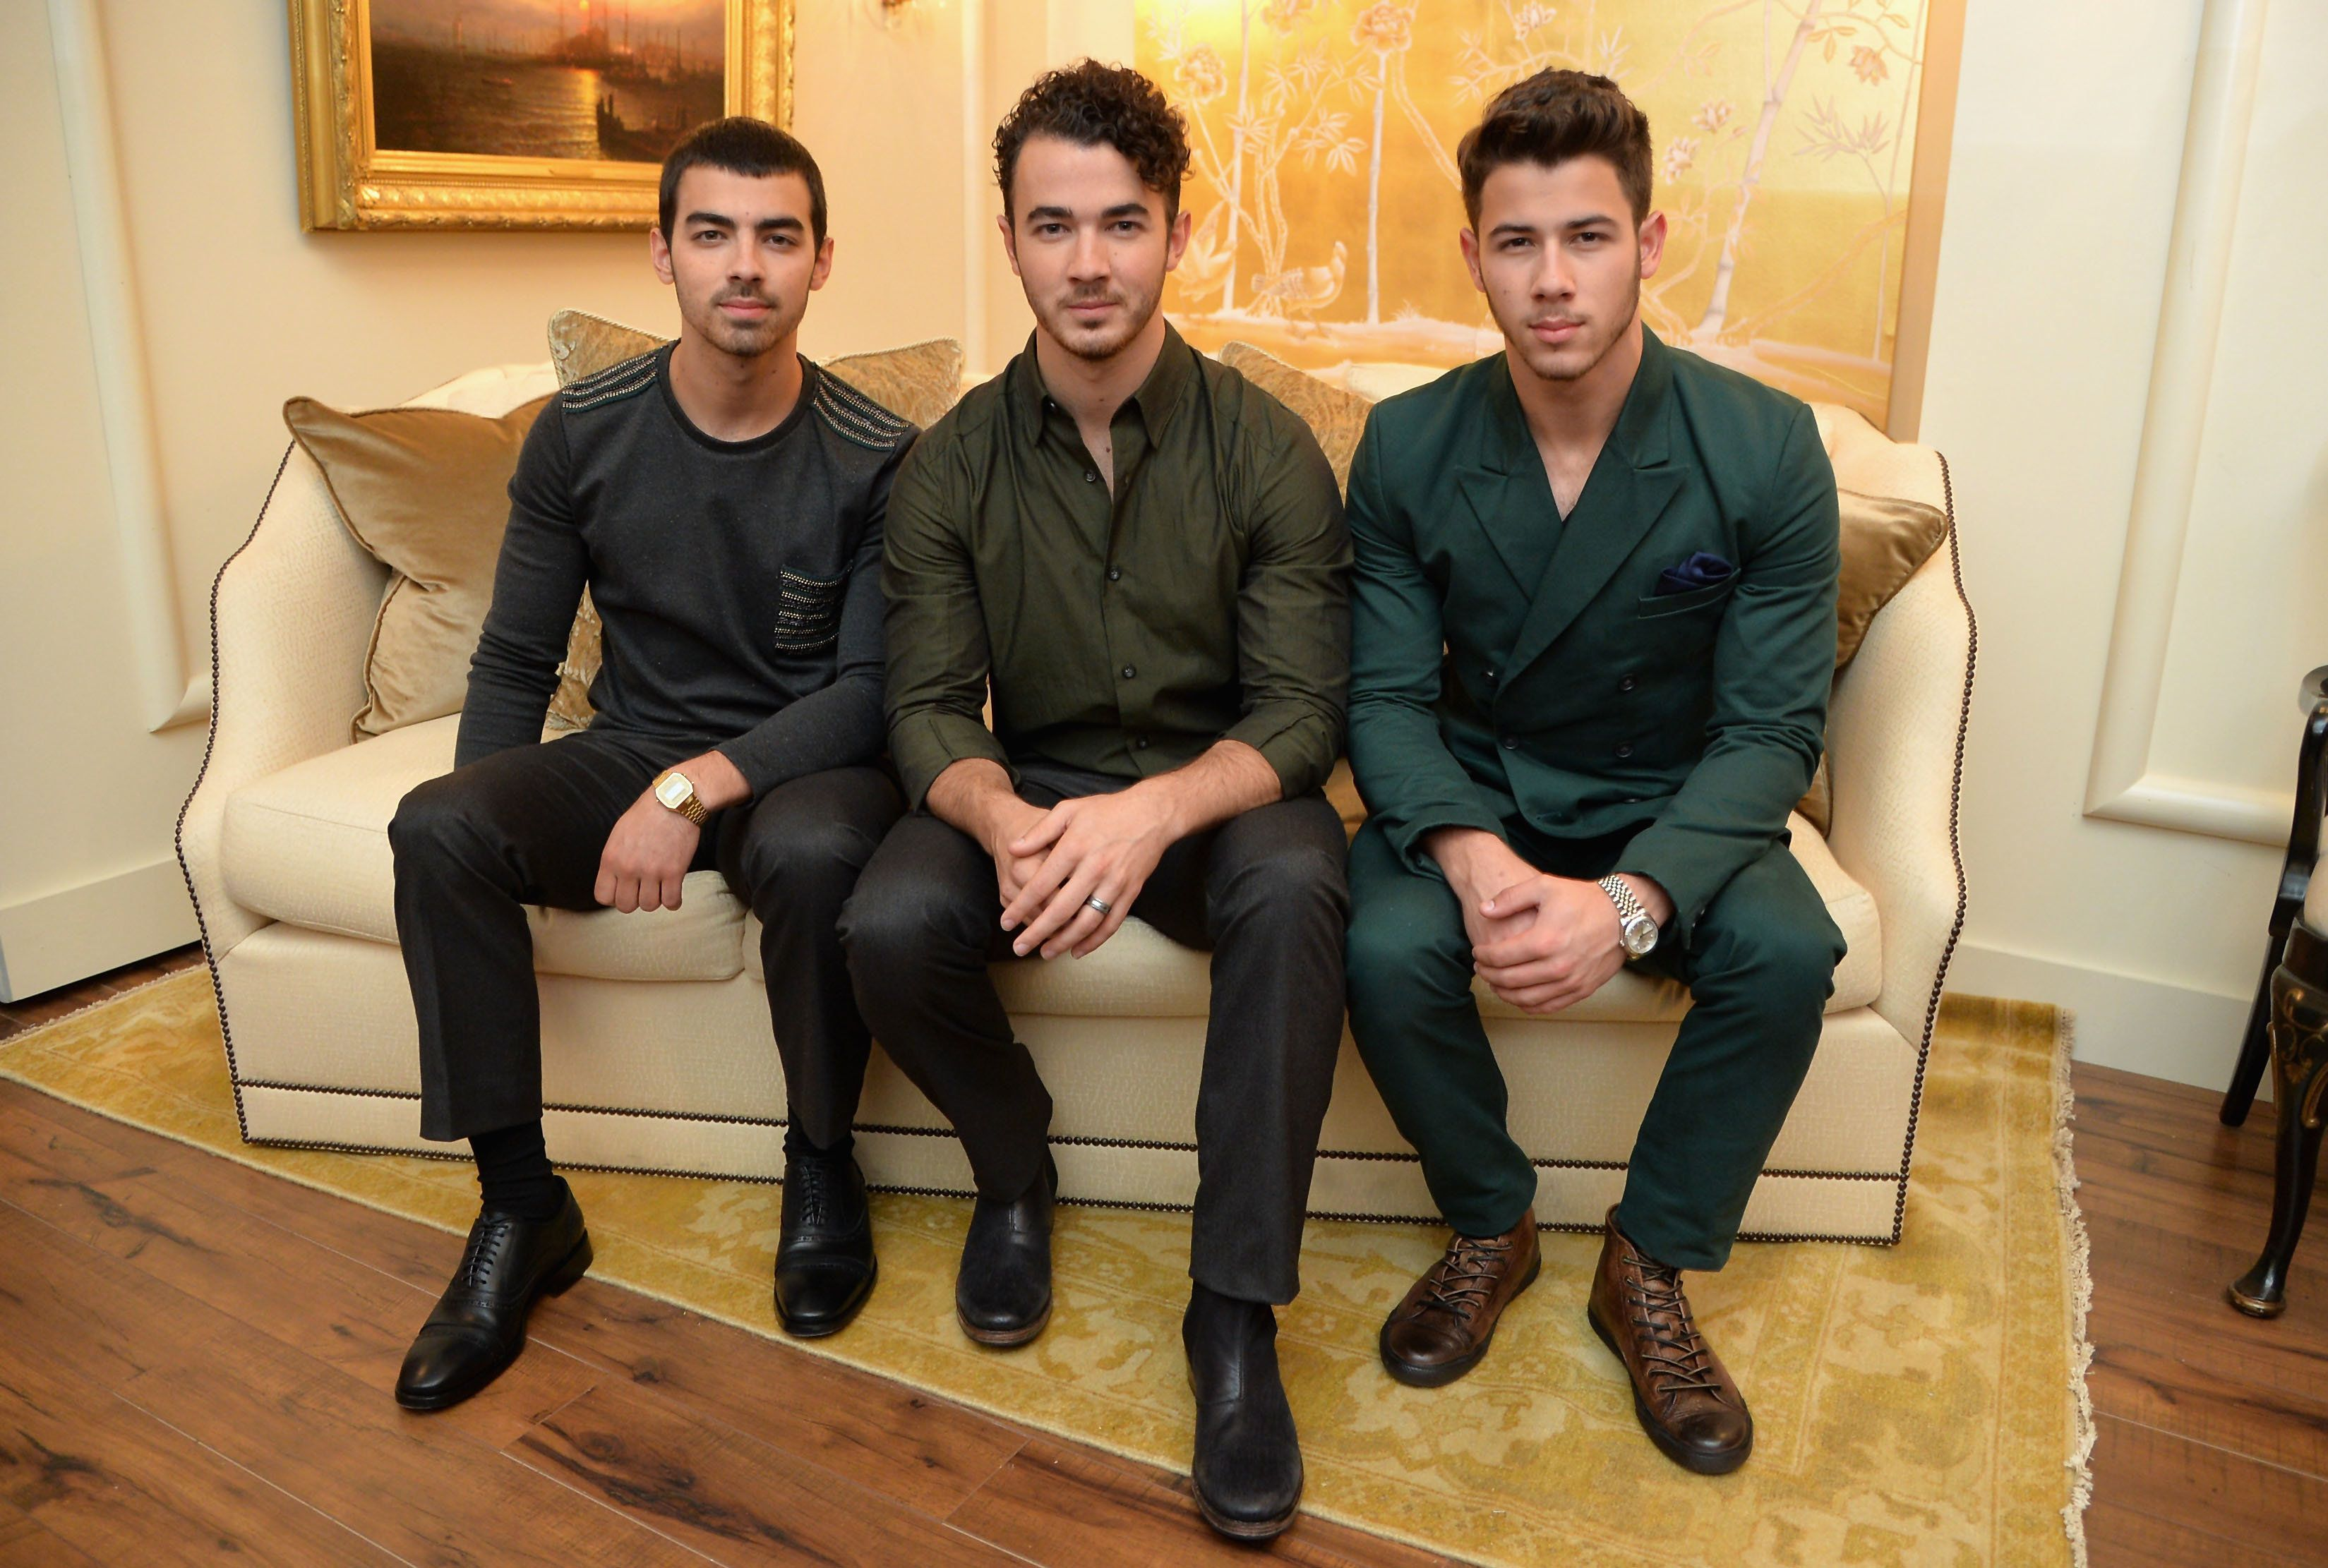 NEW YORK, NY - SEPTEMBER 05: (L-R) Joe Jonas, Kevin Jonas, and Nick Jonas of the Jonas Brothers attend the Mercedes-Benz Star Lounge during Mercedes-Benz Fashion Week Spring 2014 at Lincoln Center on September 5, 2013 in New York City.  (Photo by Mike Coppola/Getty Images for Mercedes-Benz)